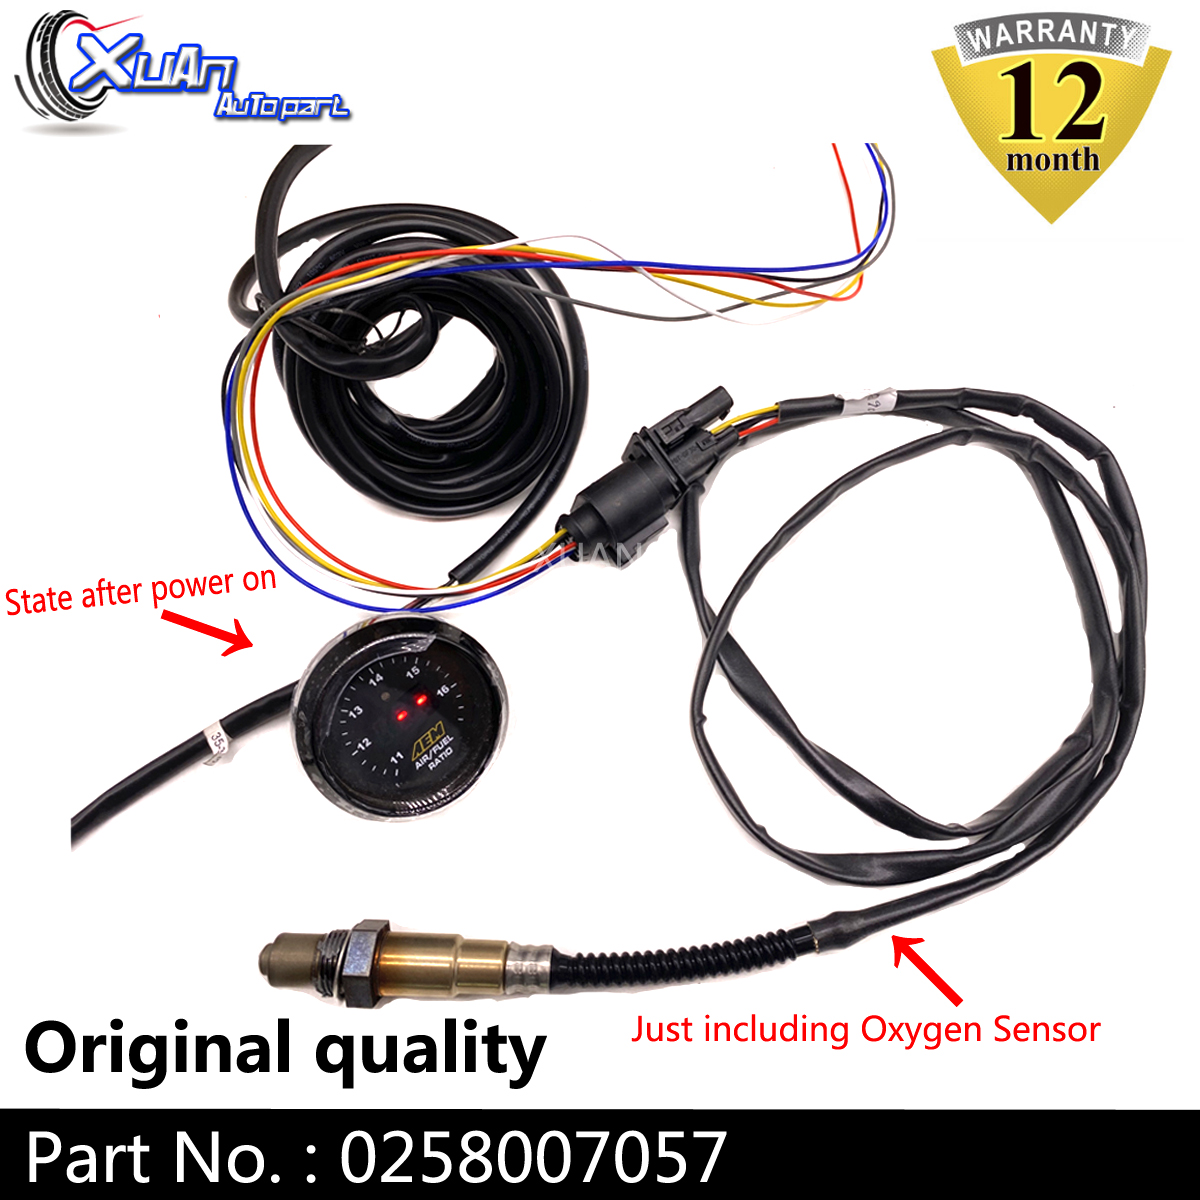 XUAN Oxygen Sensor AIR FUEL RATIO Lambda O2 SENSOR 021906262B For AUDI TT Volkswagen Je tta Golf Beetle 0258007057 <font><b>17014</b></font> image